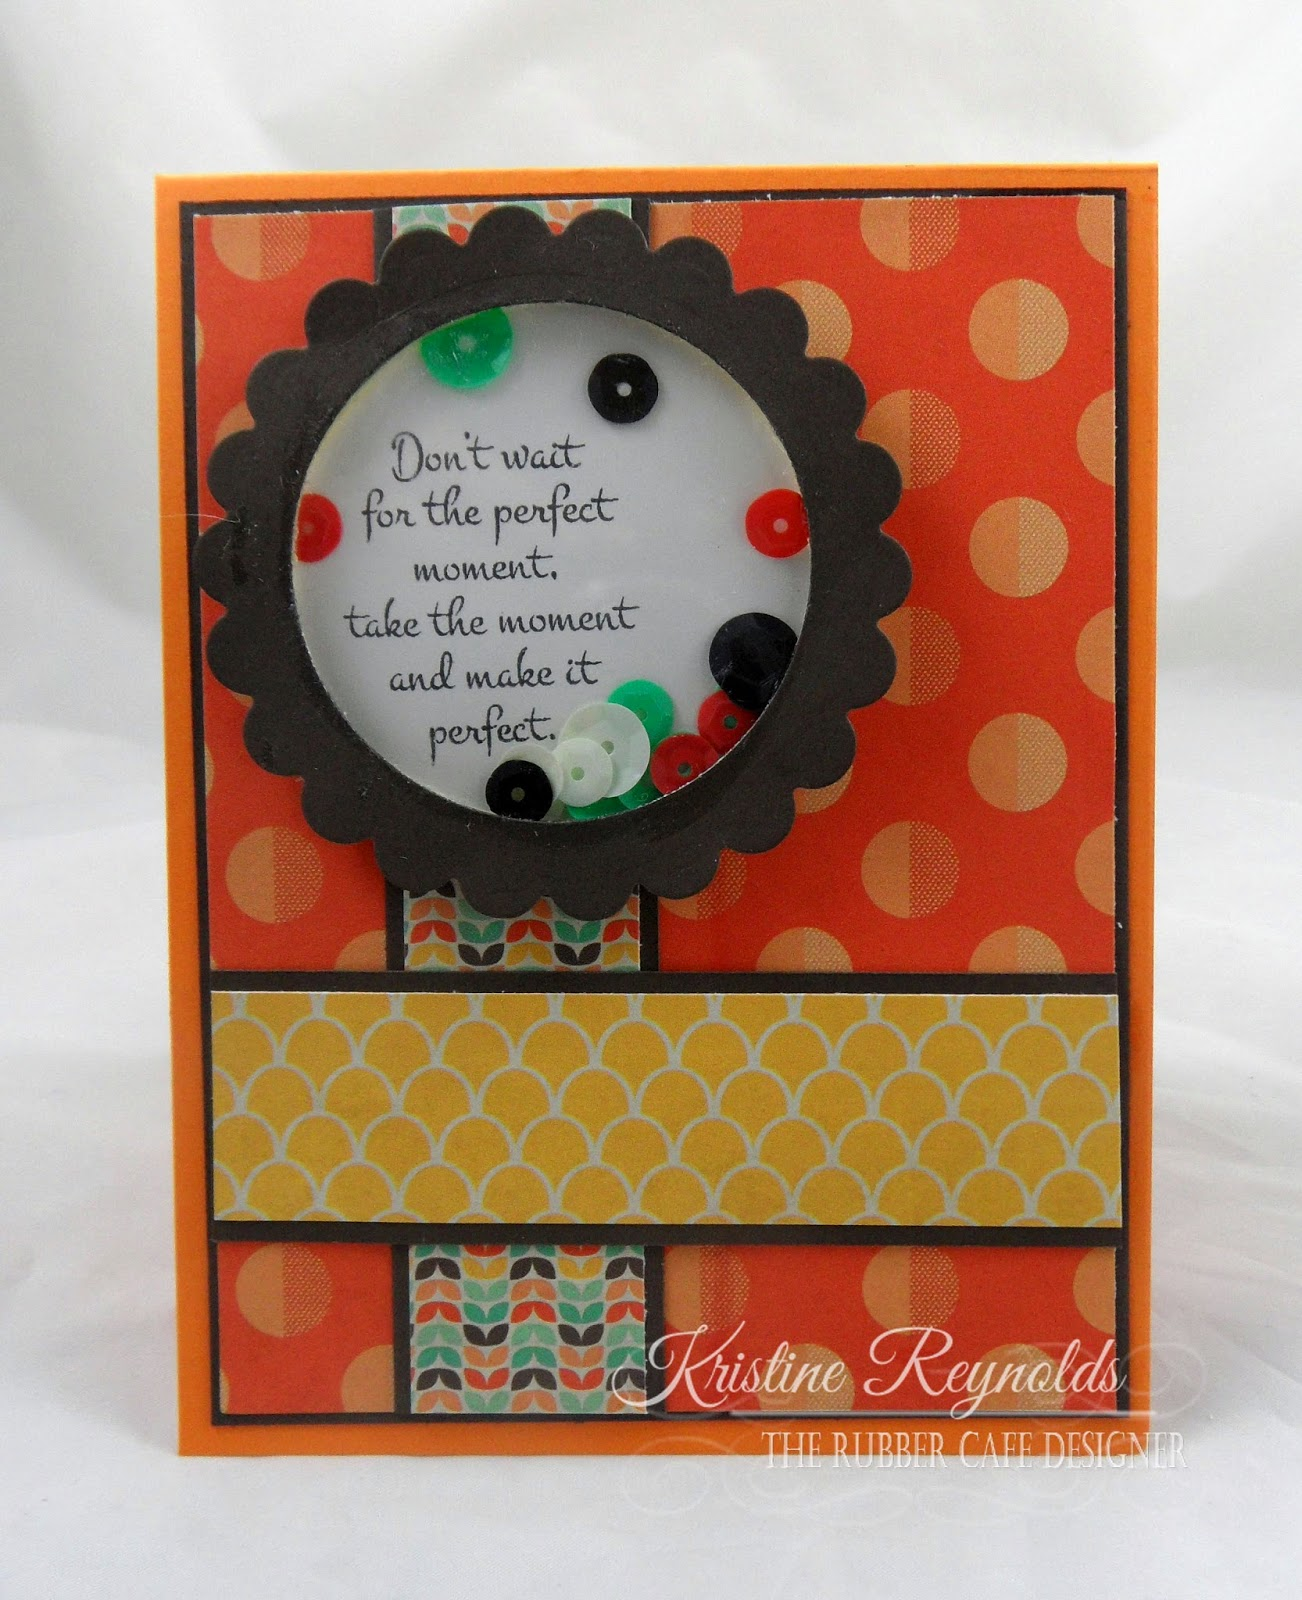 the rubber cafe design team blog: make it perfect shaker card